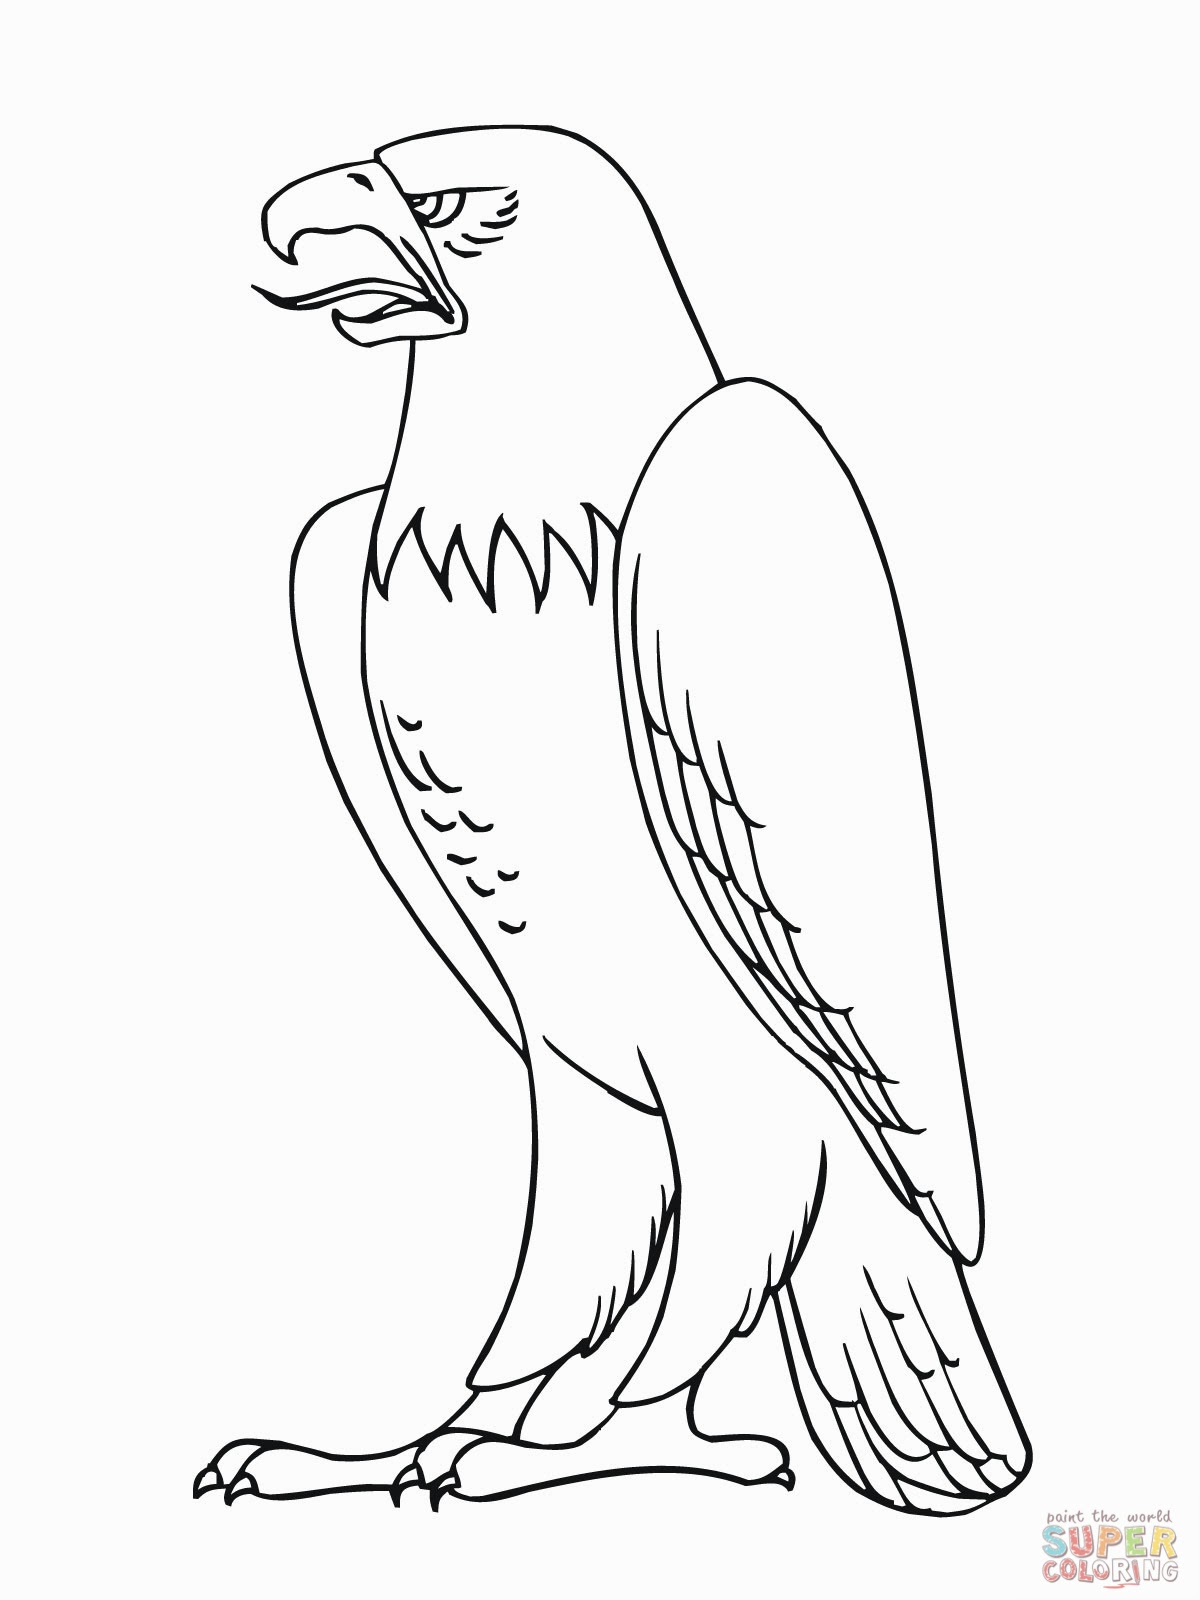 cartoon eagle coloring pages tribal eagle colouring pages page 2 clipart best pages cartoon eagle coloring